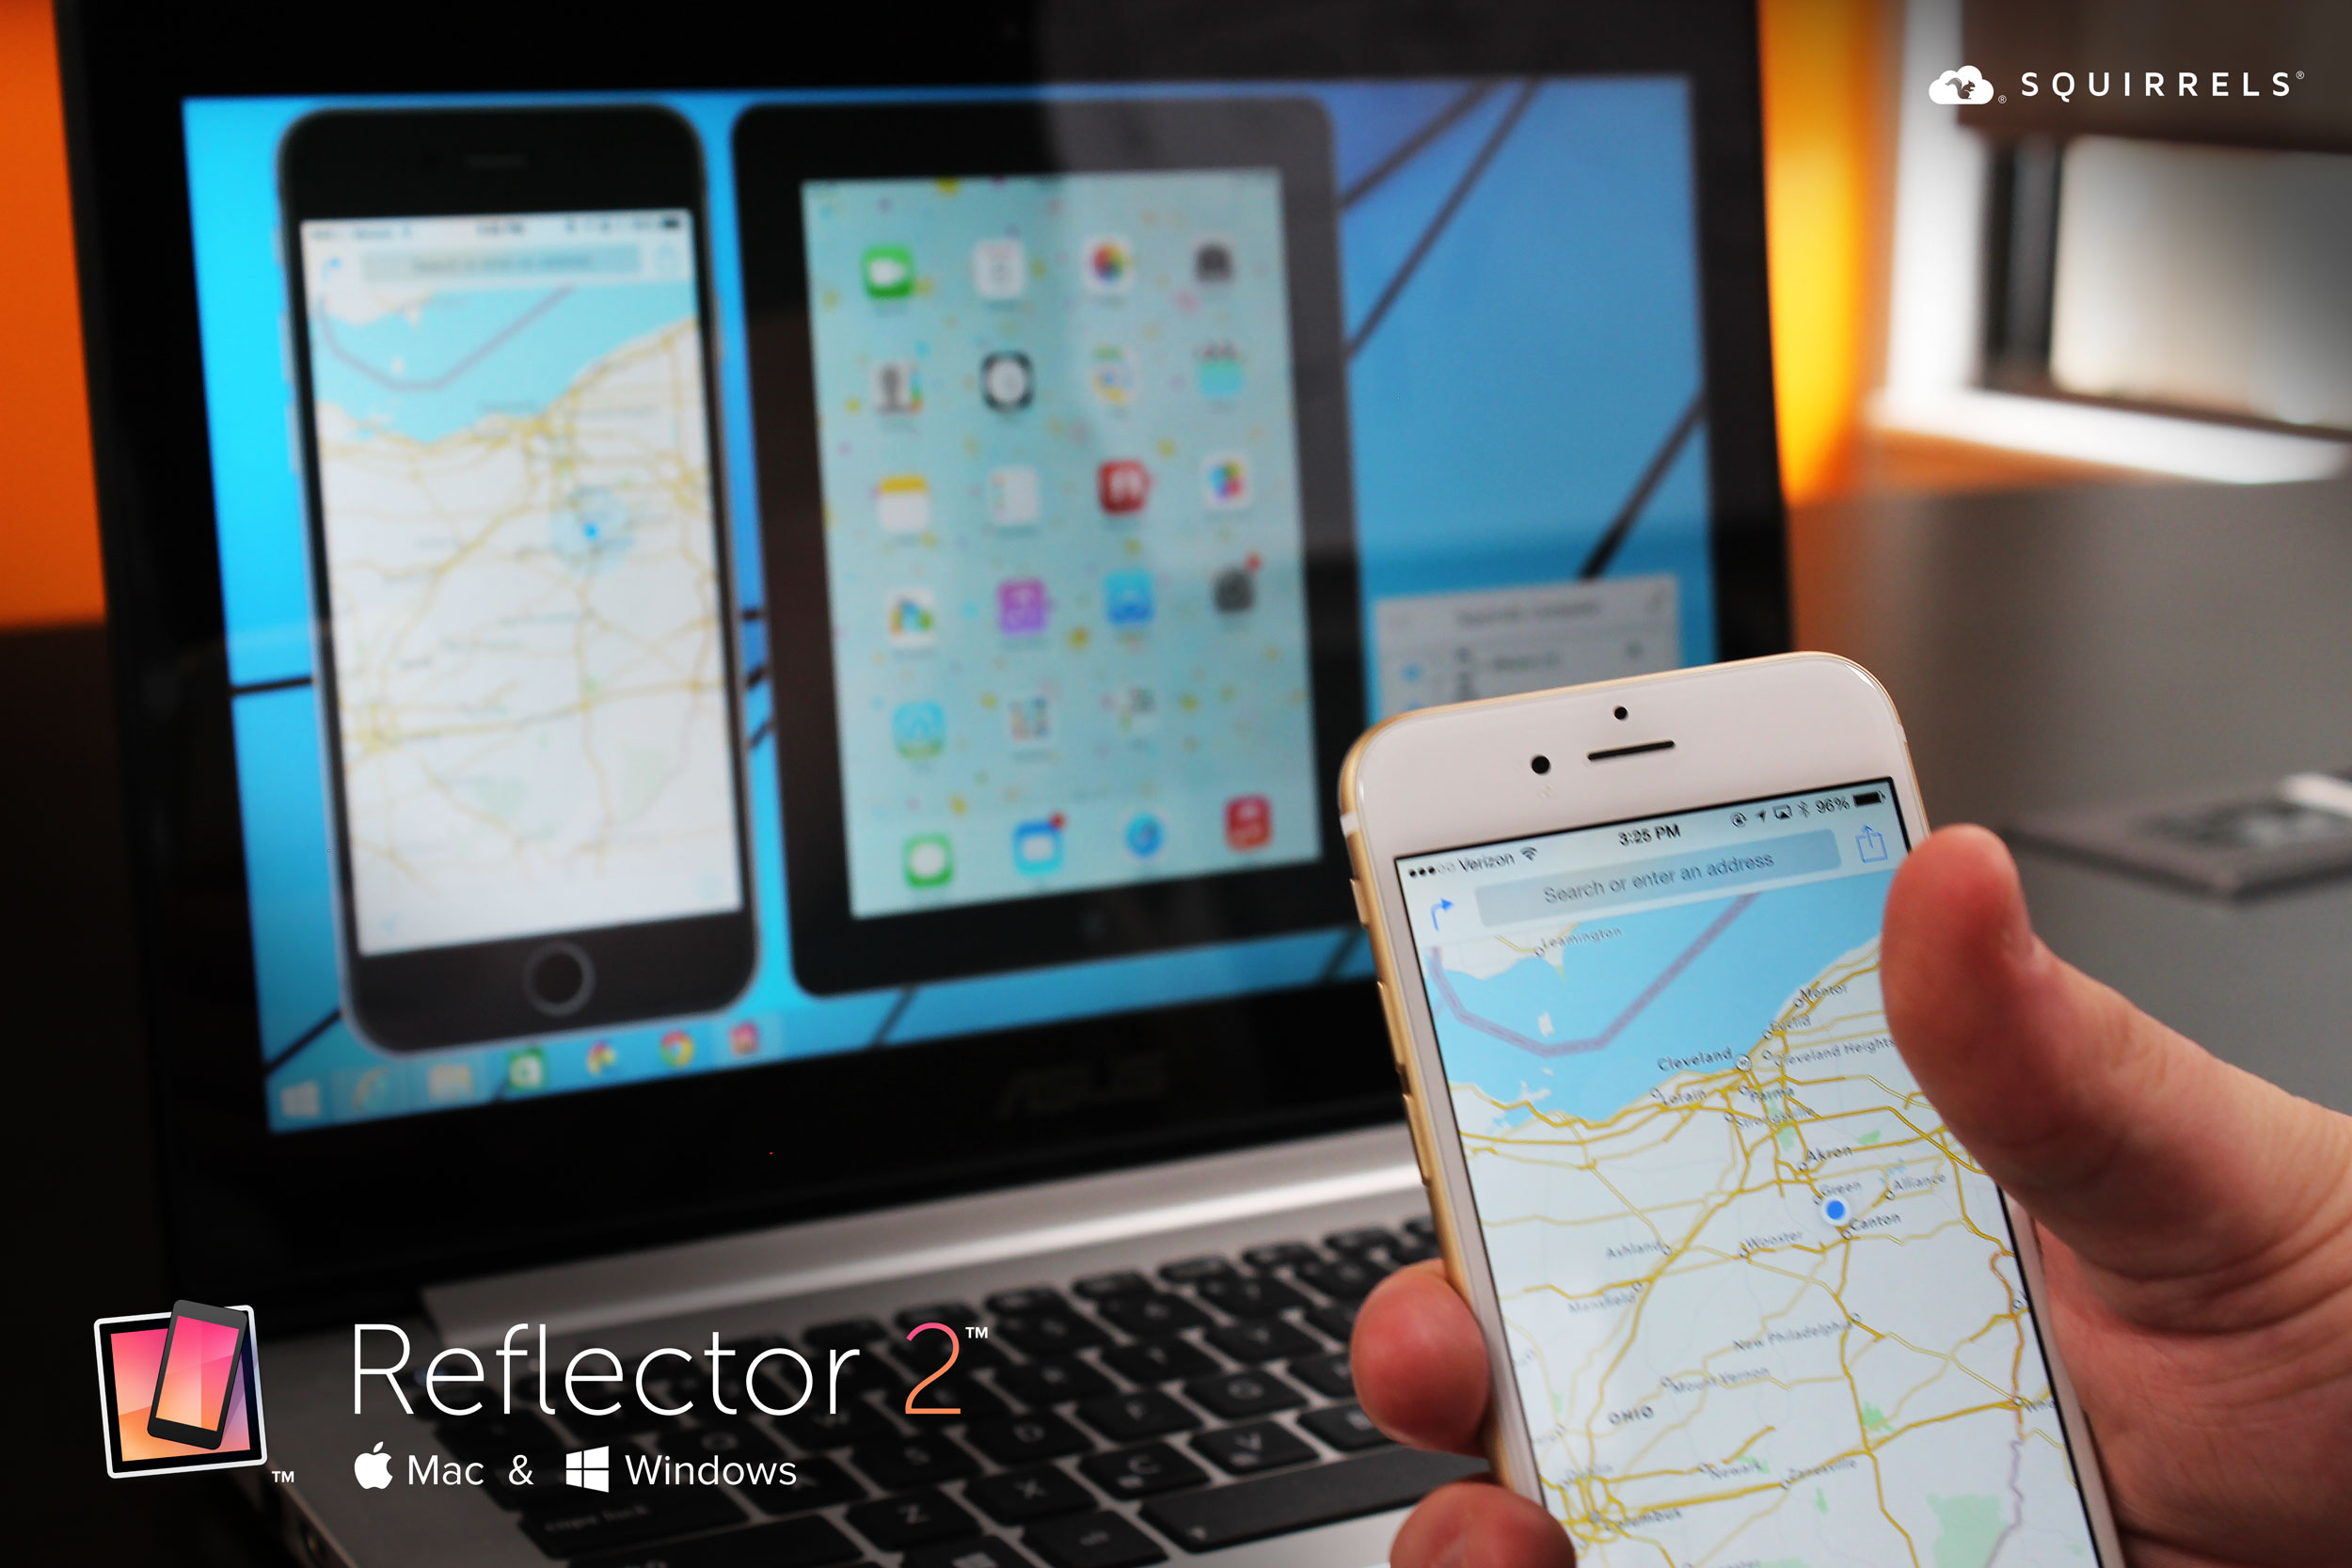 Reflector 2 6 is Now Available for Mac and Windows